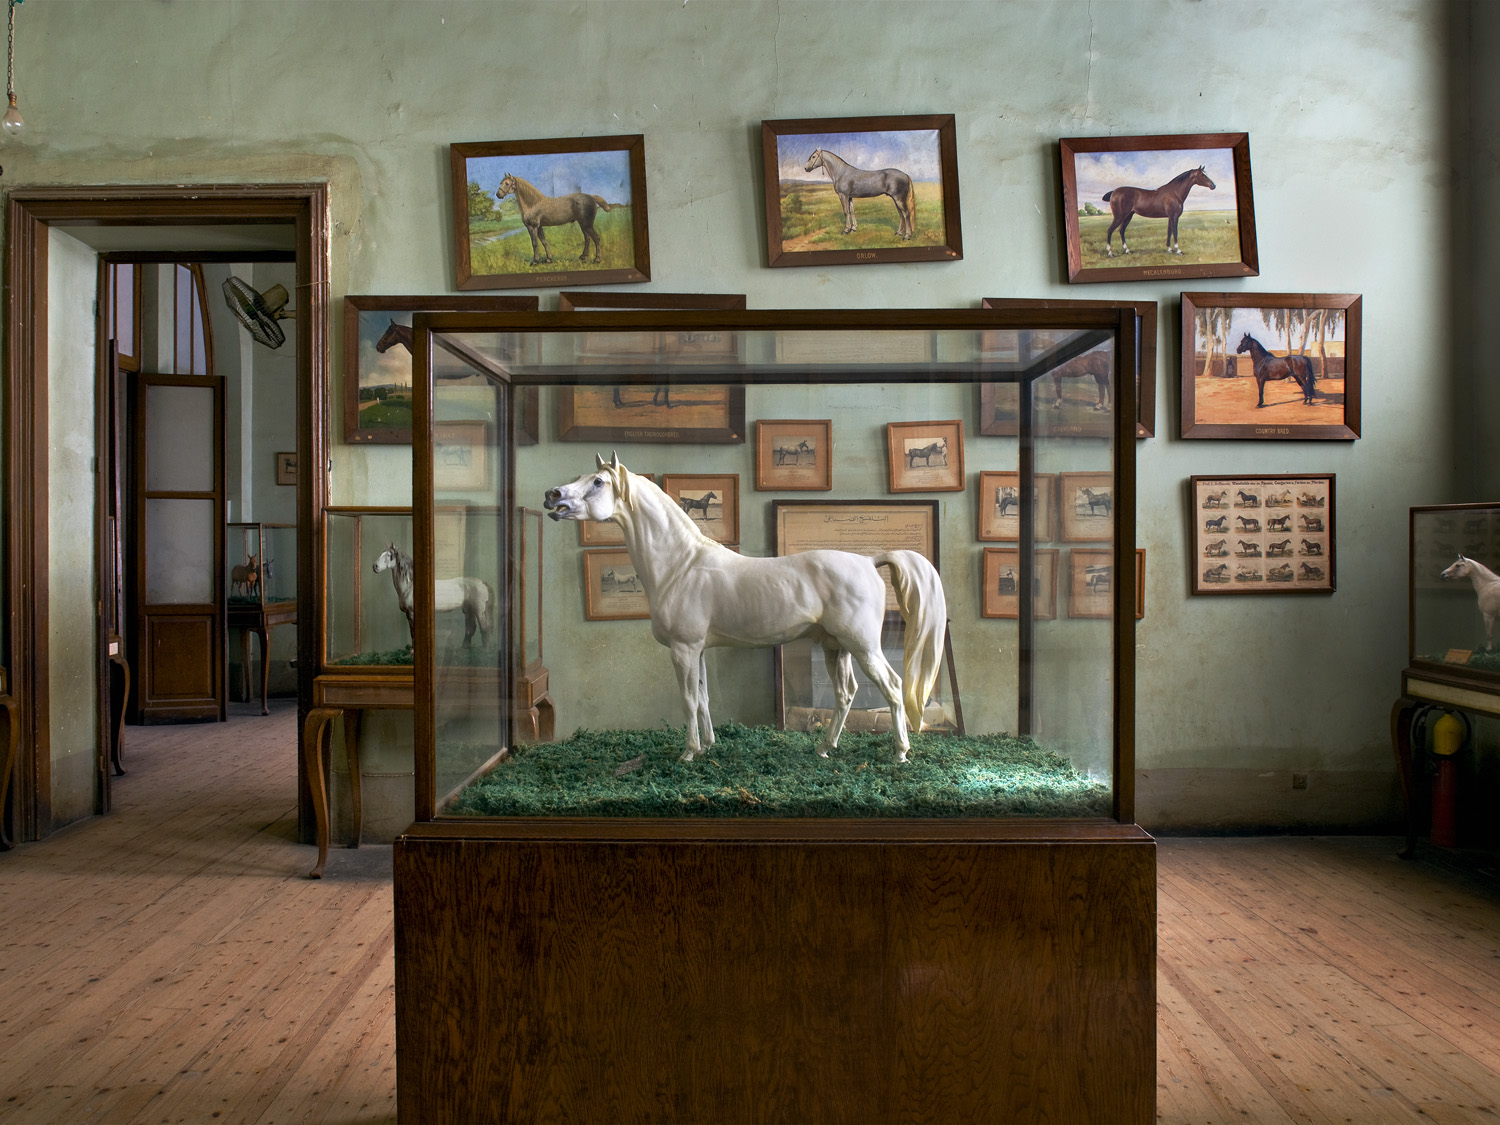 Horses, The Agriculture Museum in Cairo, 2007